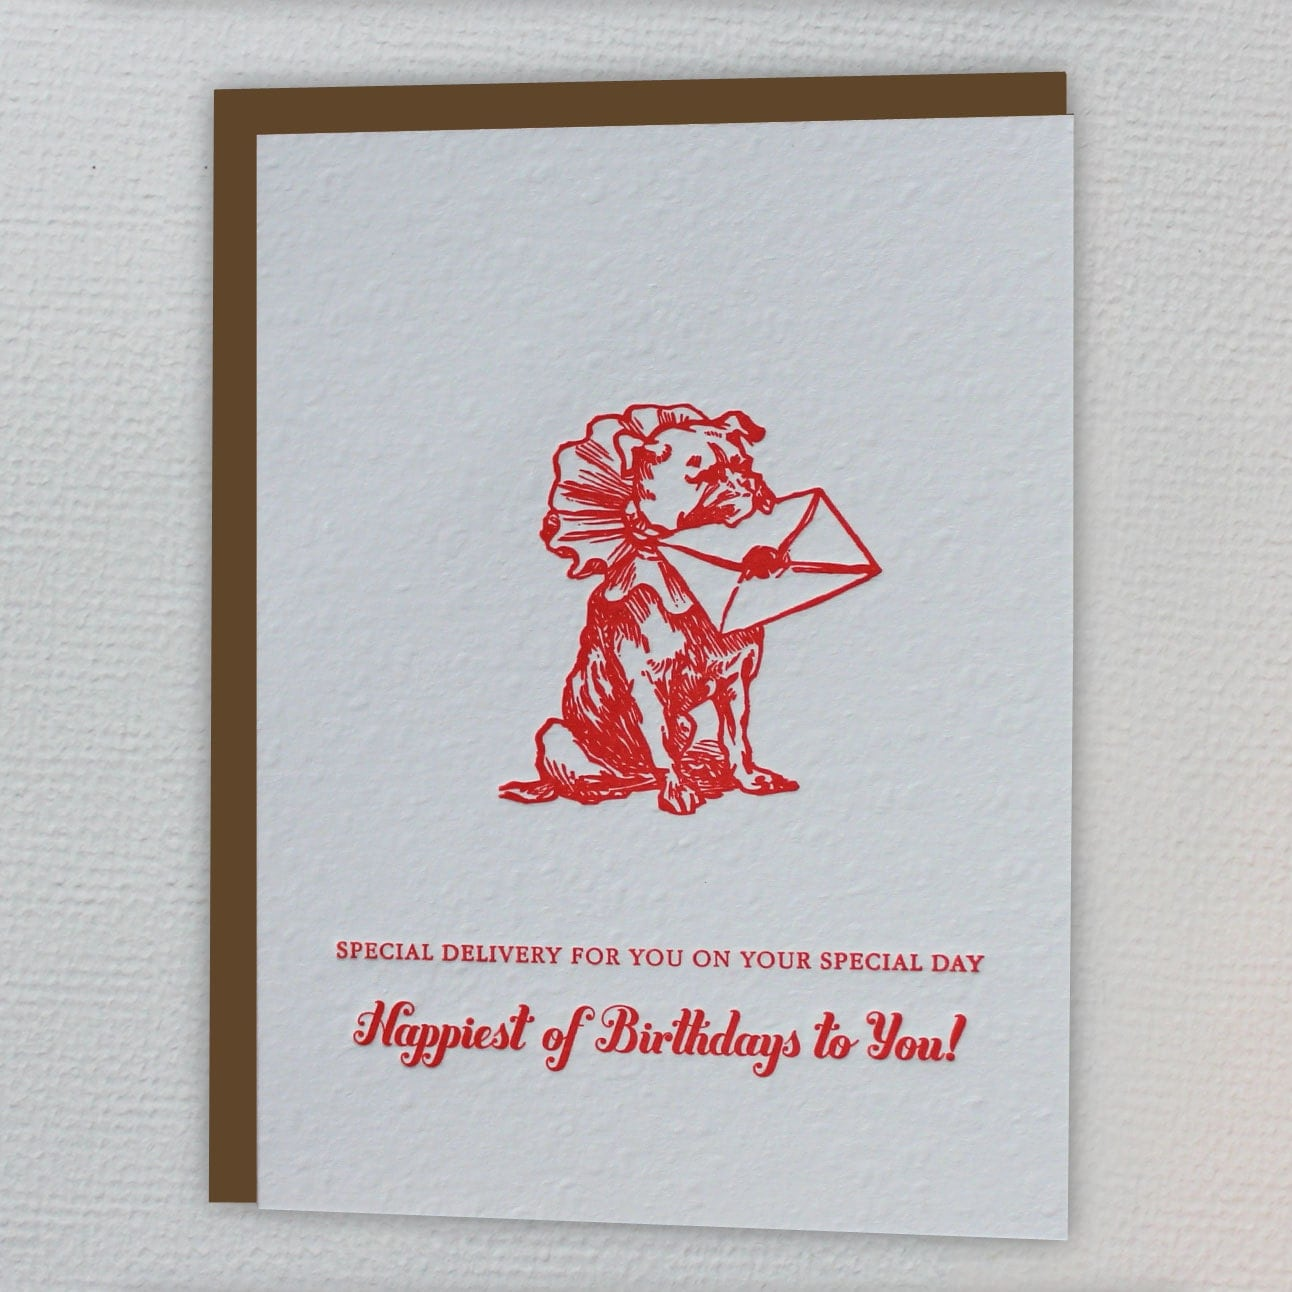 Special Delivery... Happy Birthday Letterpress Greeting Card